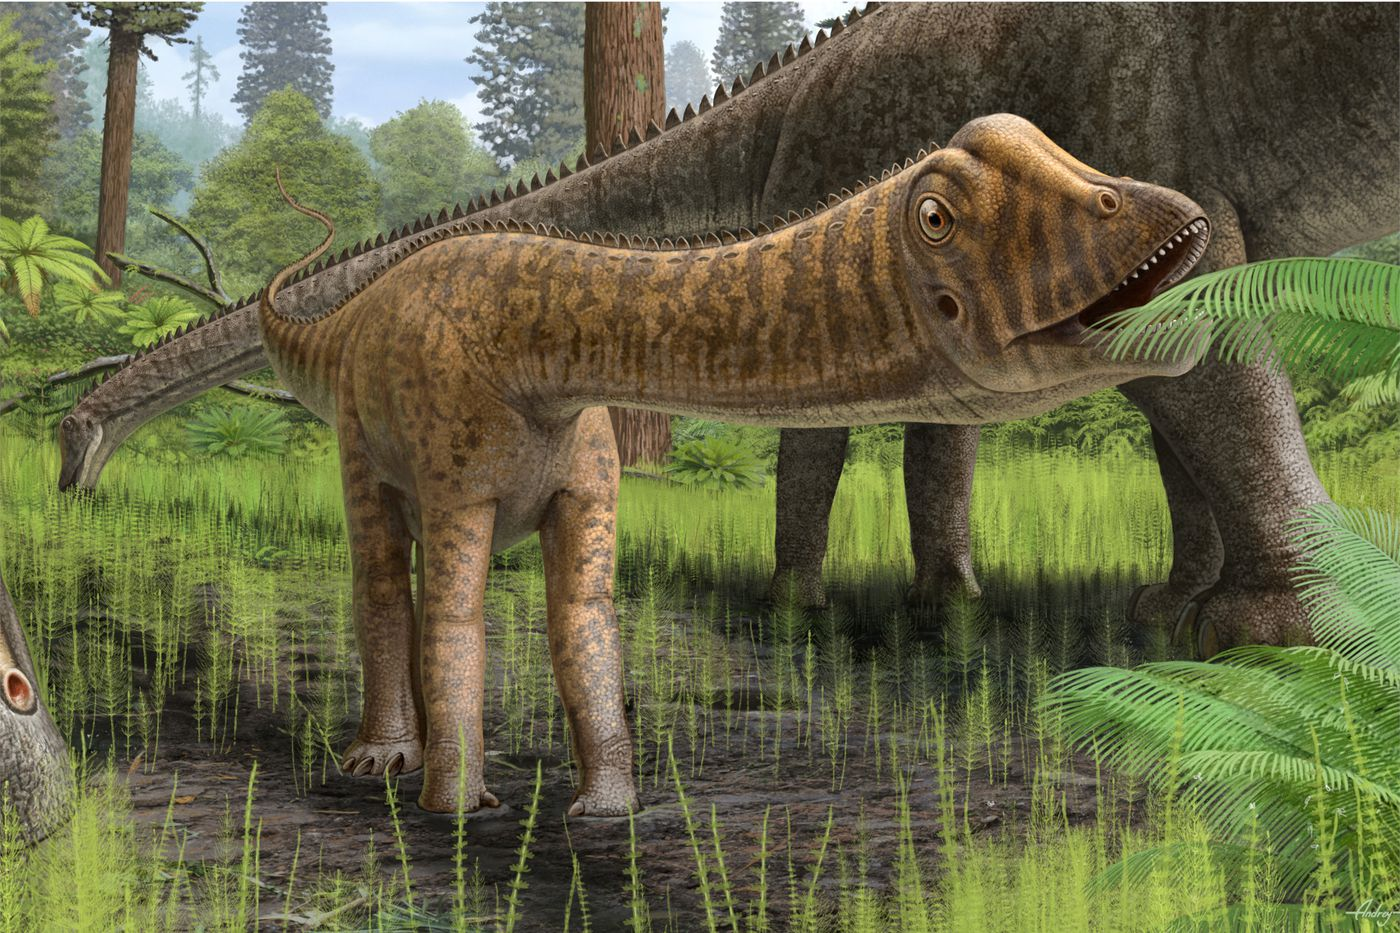 Guess what these young dinosaurs ate when their parents weren't looking